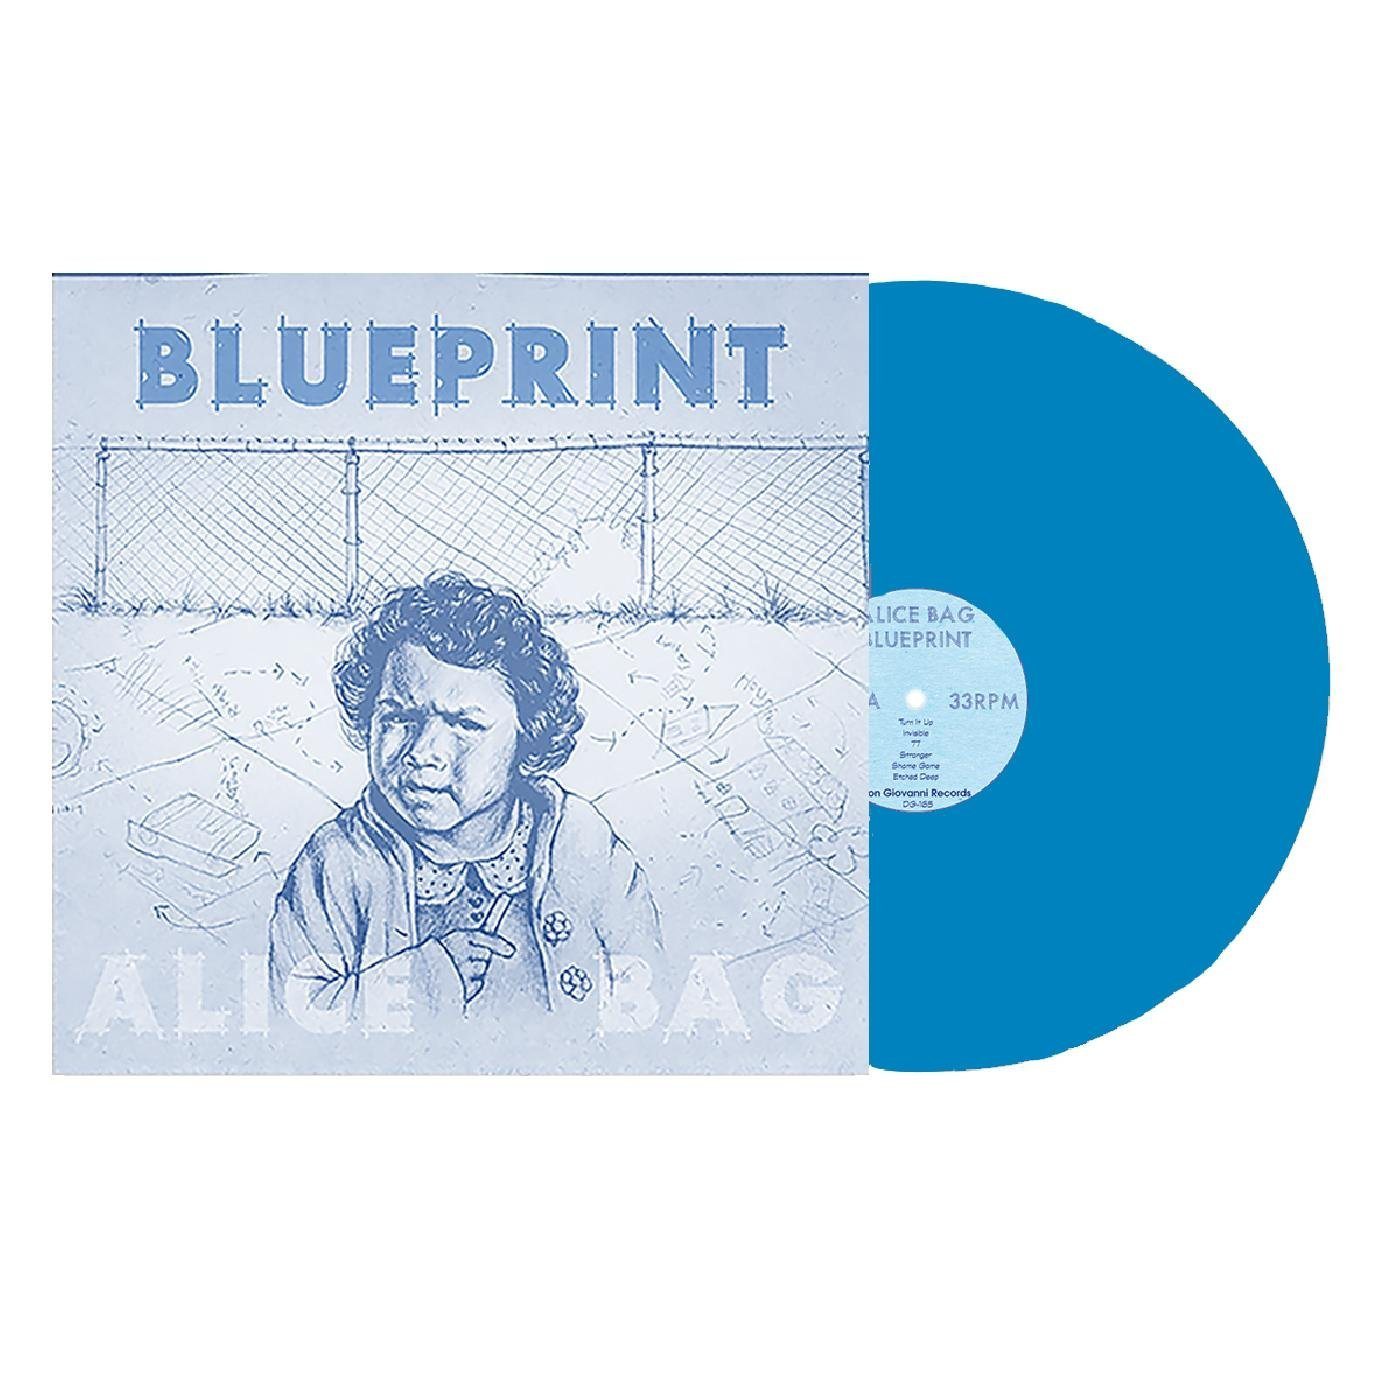 Alice Bag - Blueprint [Blue LP]